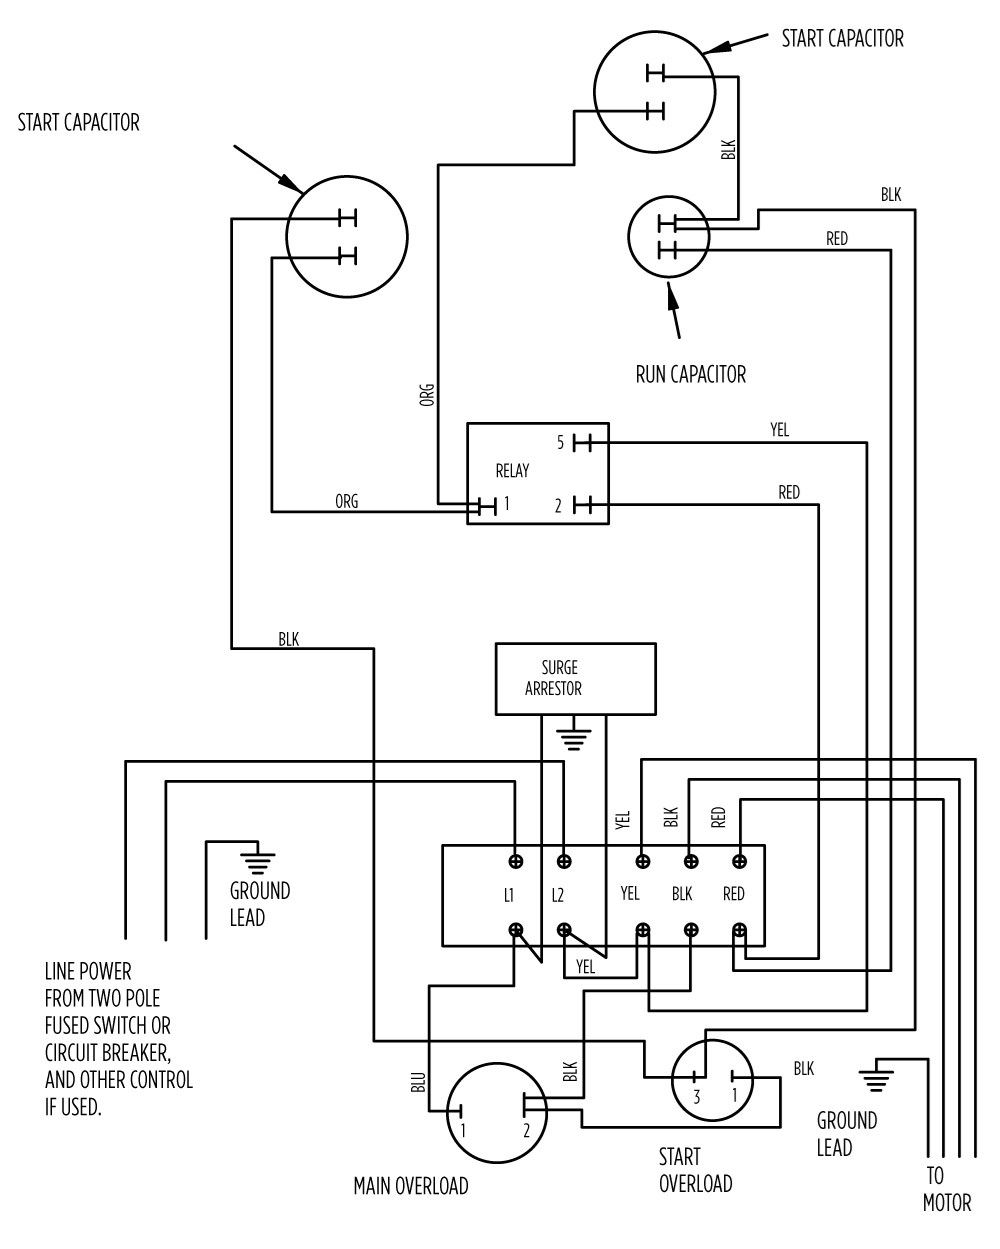 Pump Control Box Wiring Diagram Single Phase Submersible 1995 Bmw 325is Bulldog Alarms Diagrams Annavernon Franklin Electric Well